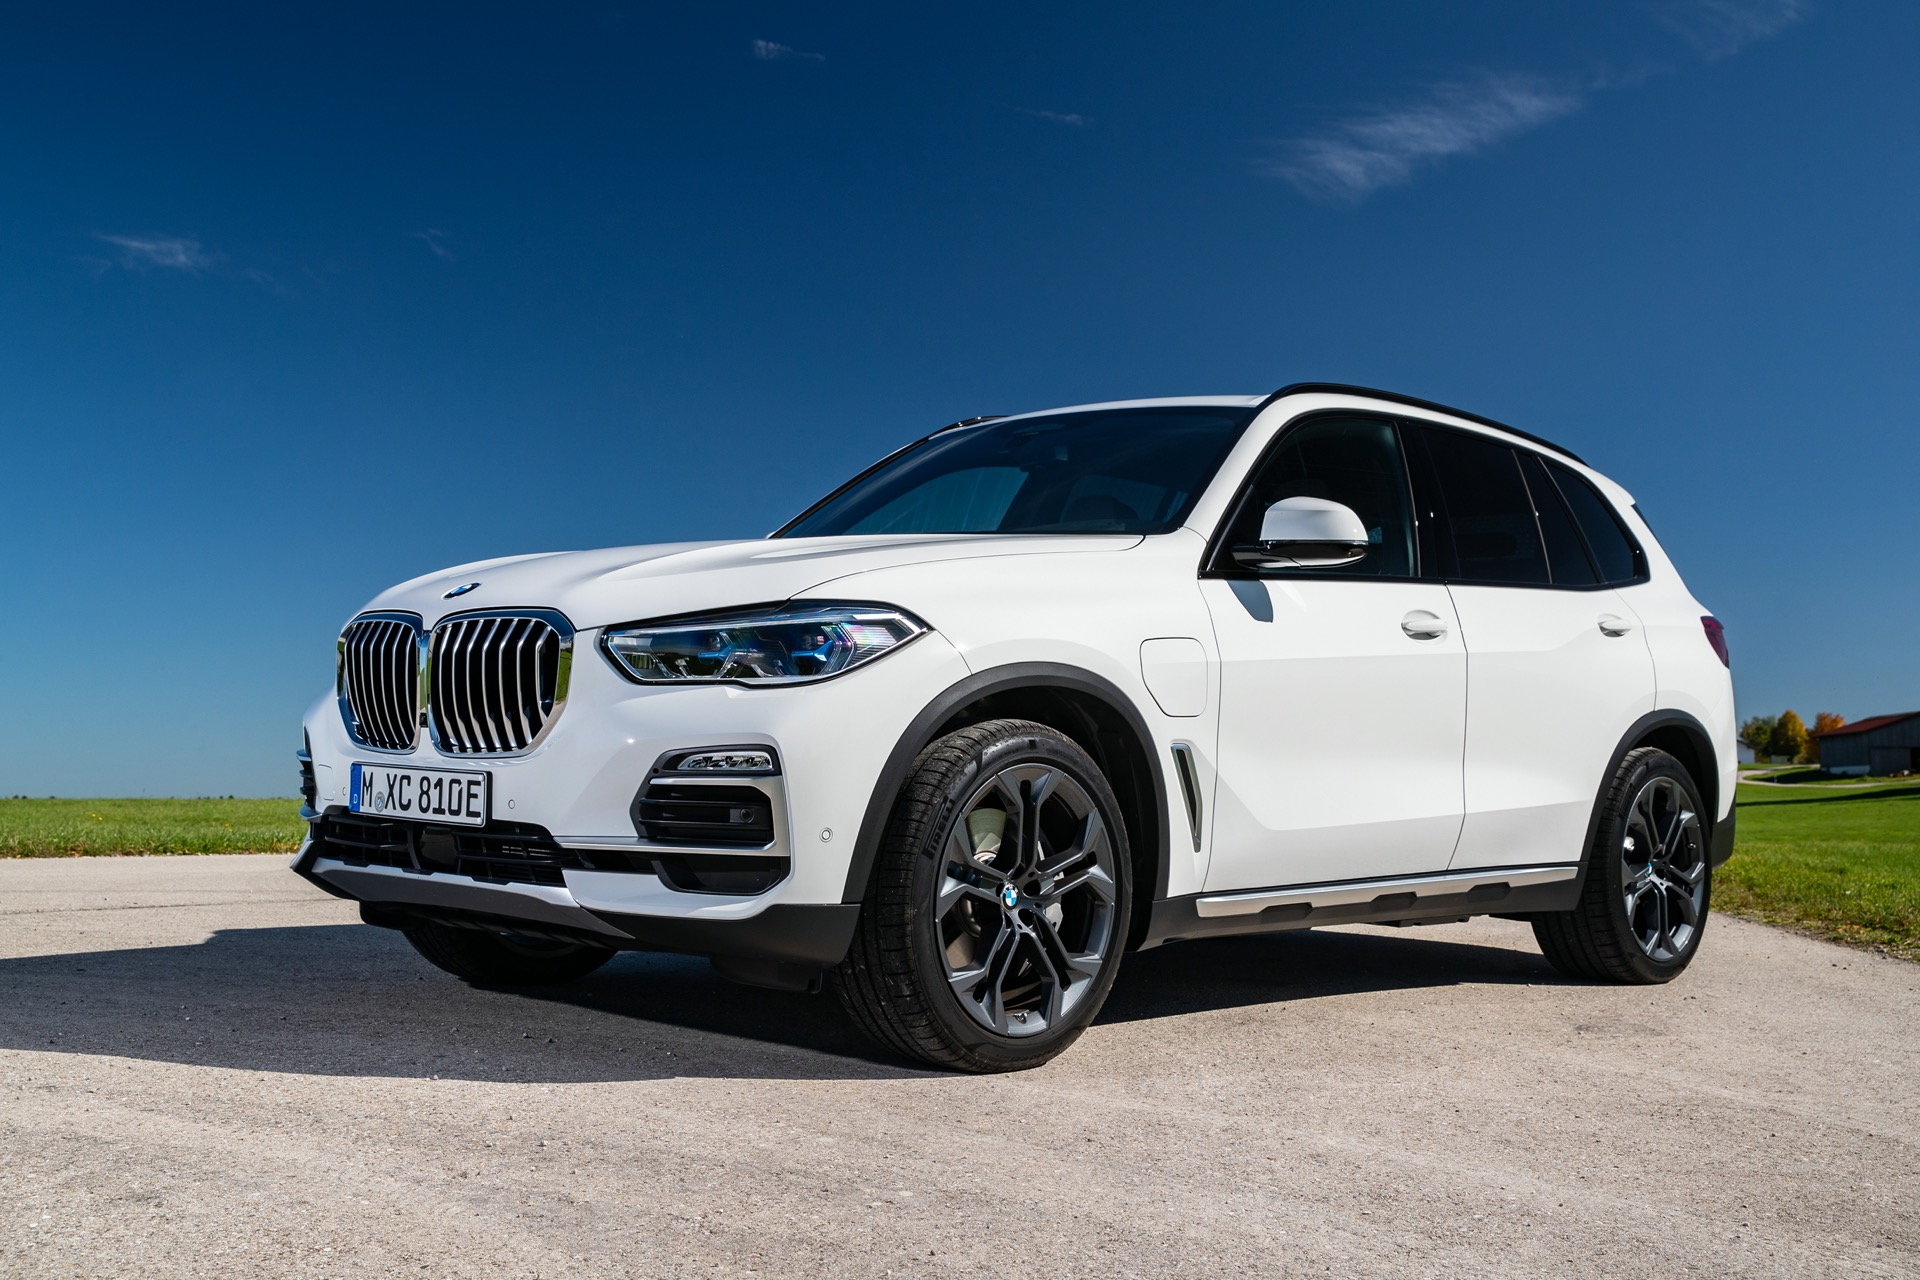 Plug In 2021 Bmw X5 Suv Gets 3 300 Price Bump Big Pump In Performance And Range